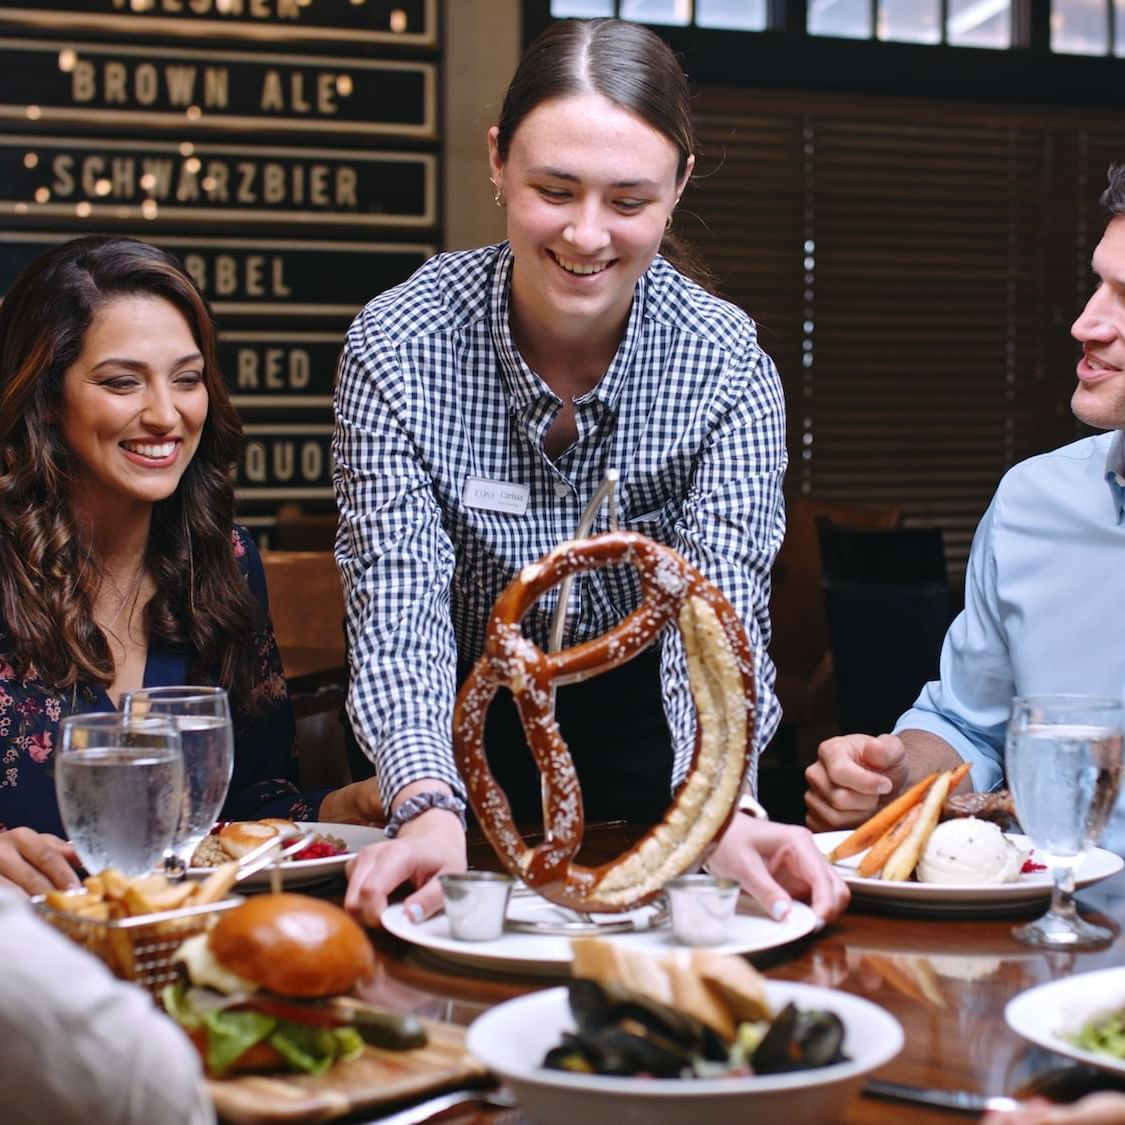 couples enjoying dinner at Avalon Brew Pub, server is smiling and presenting a giant Bavarian pretzel to the table